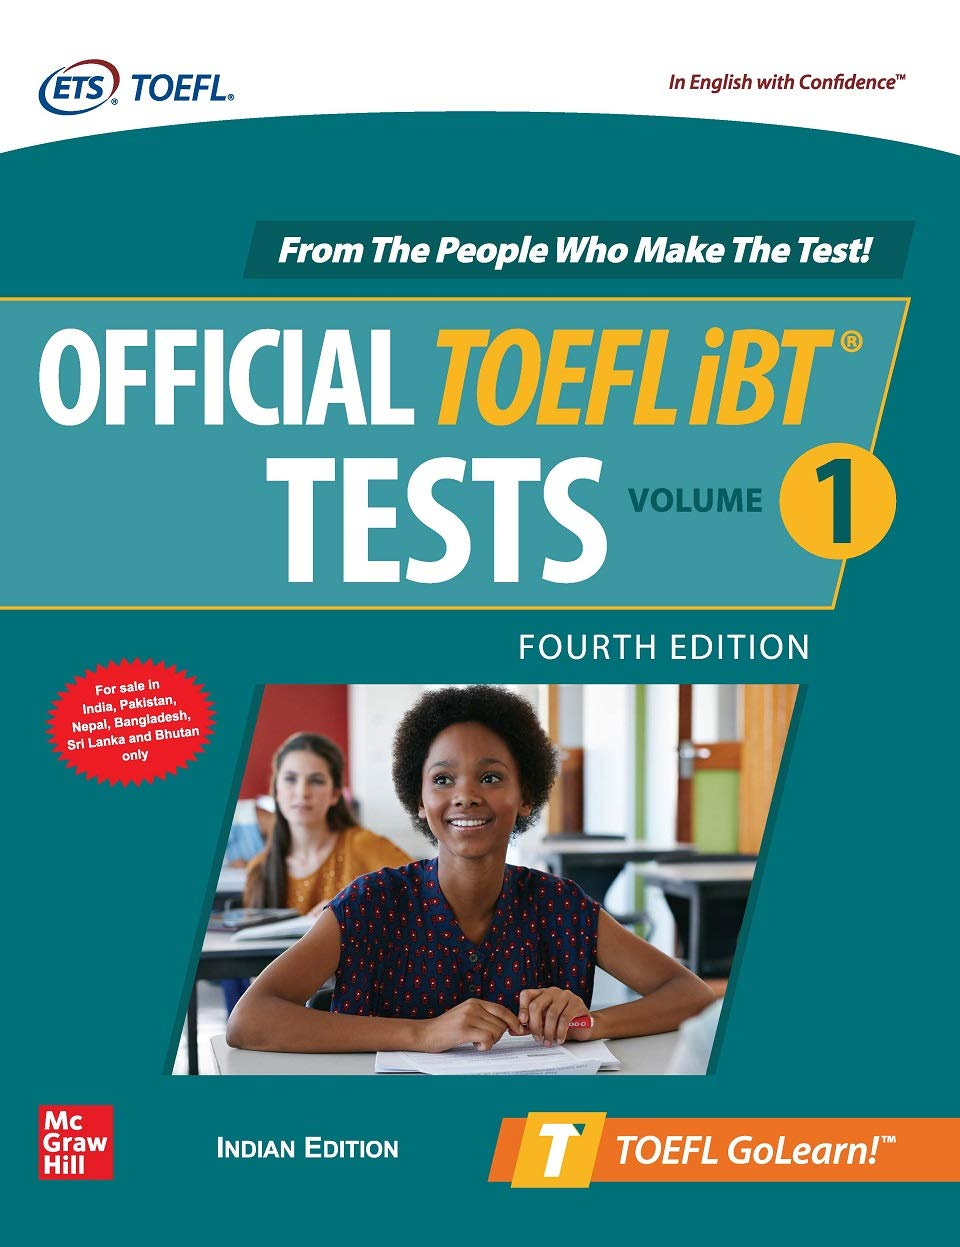 Official TOEFL iBT Tests Volume 1 – Fourth Edition